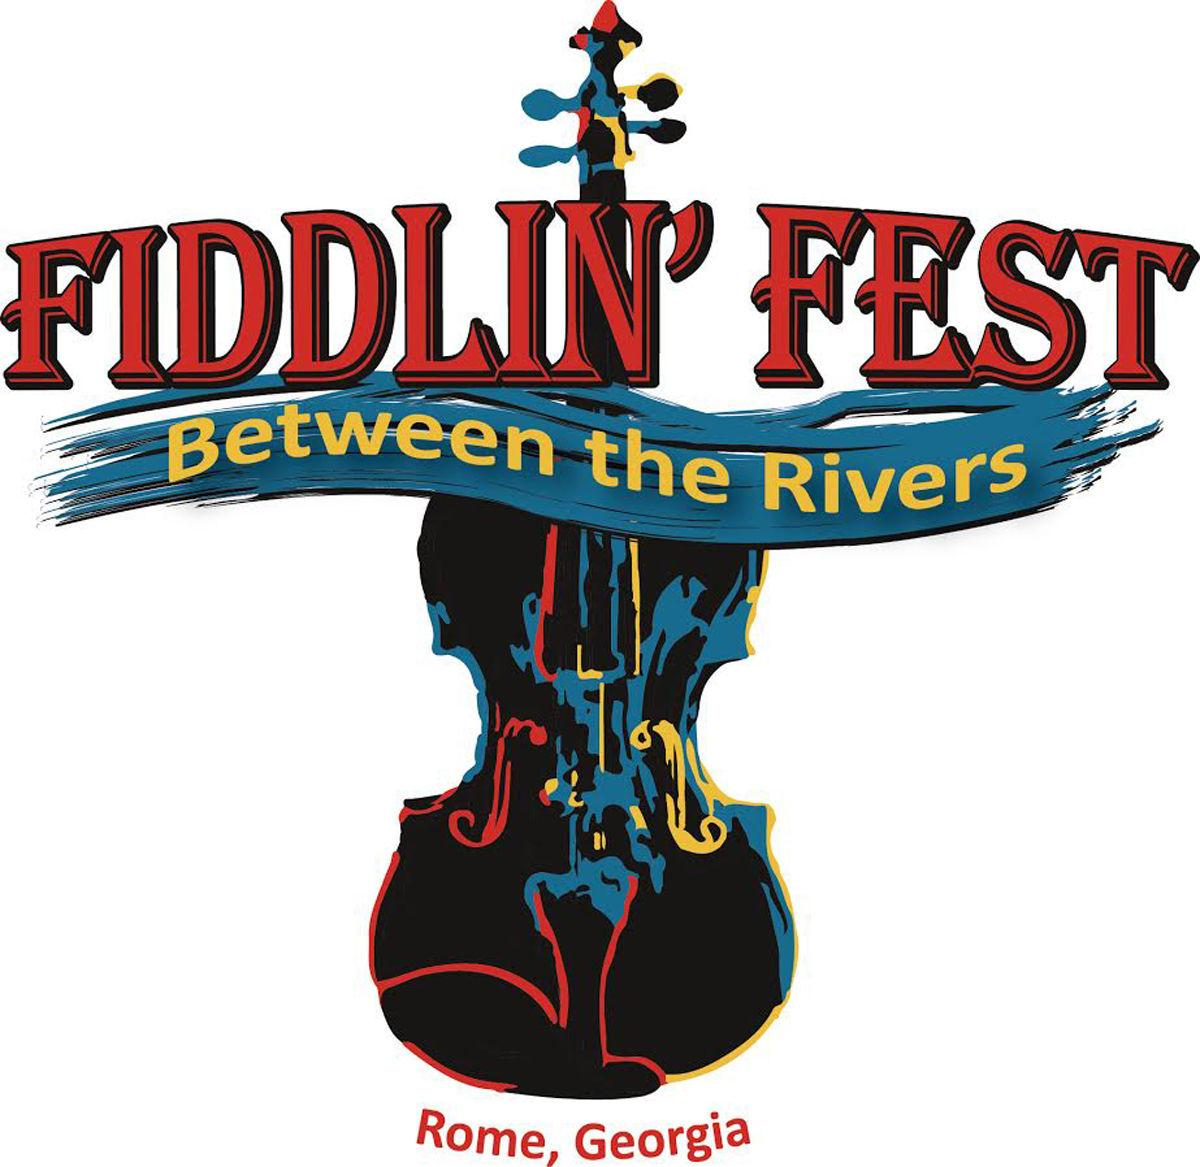 Fiddlin' Fest Between the Rivers